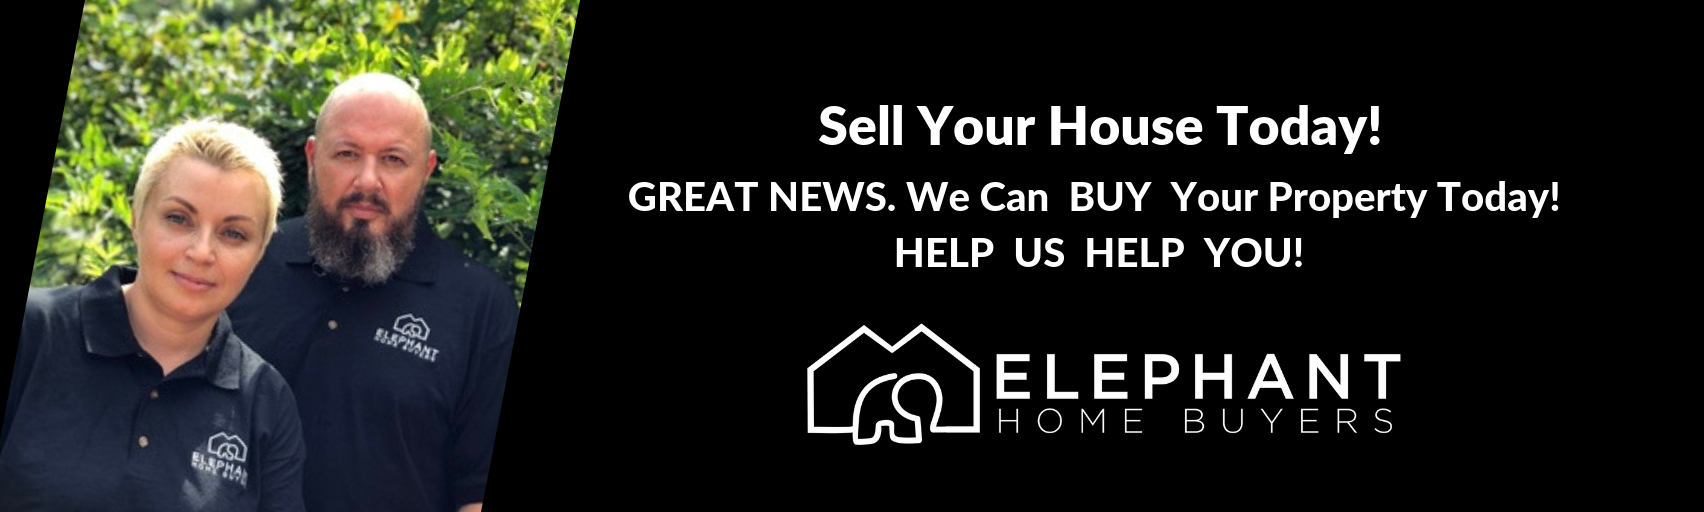 Sell My House Fast Today! logo